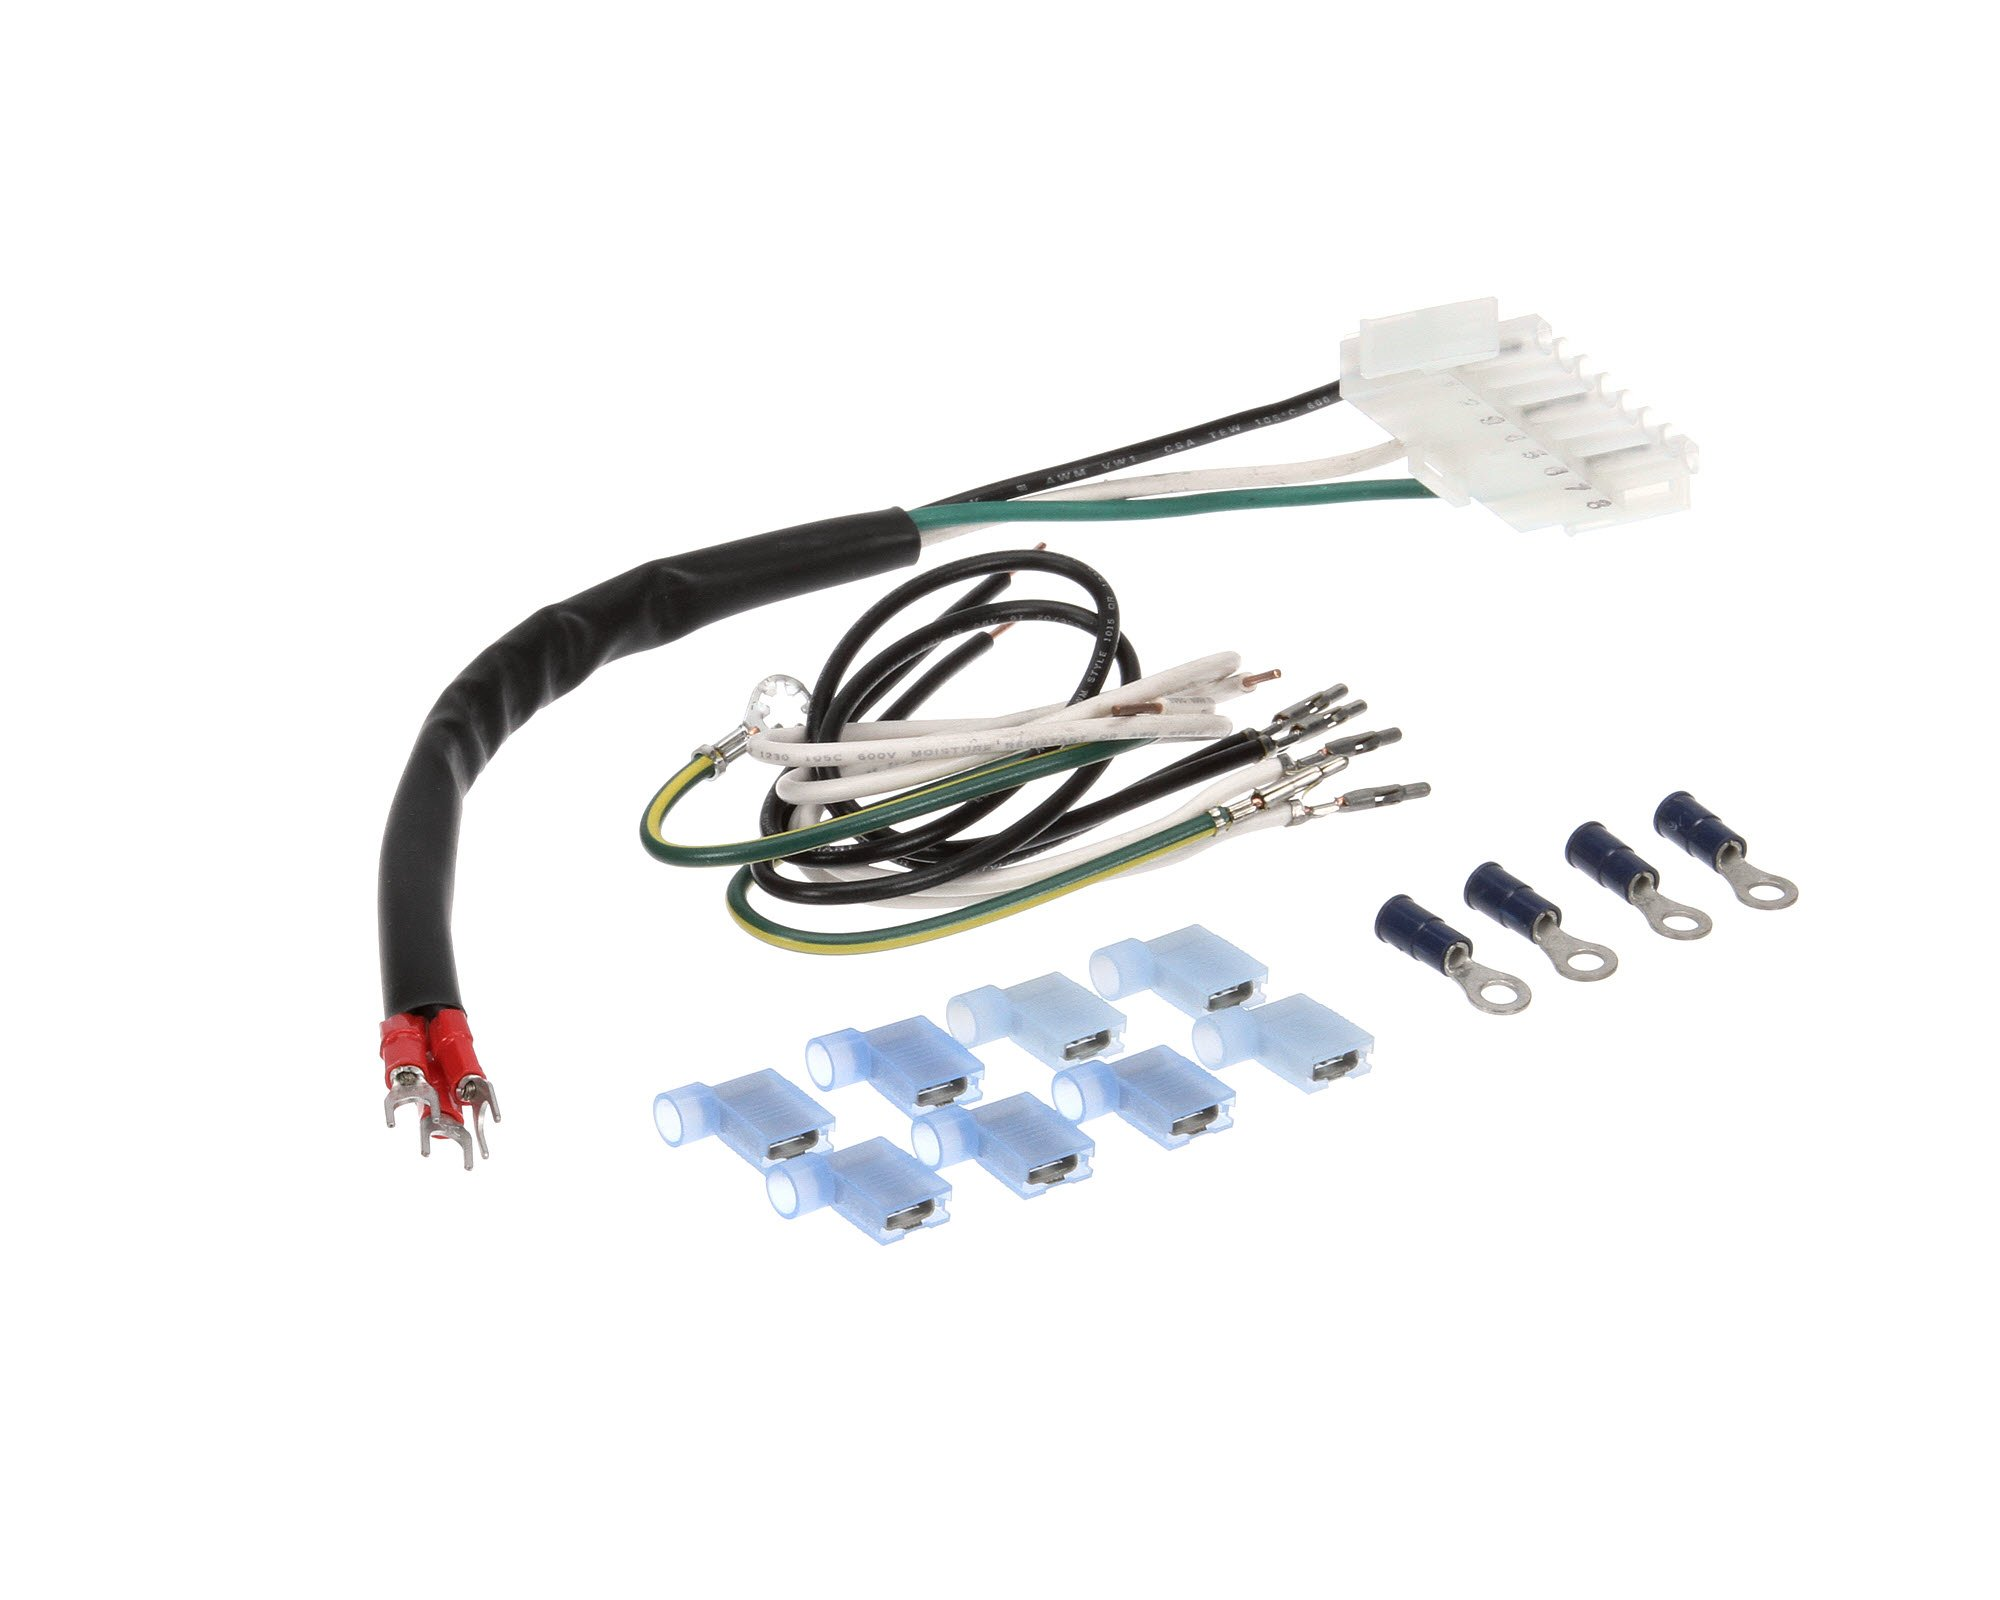 TRUE 966472 8 Pin Cord Kit with  Flange